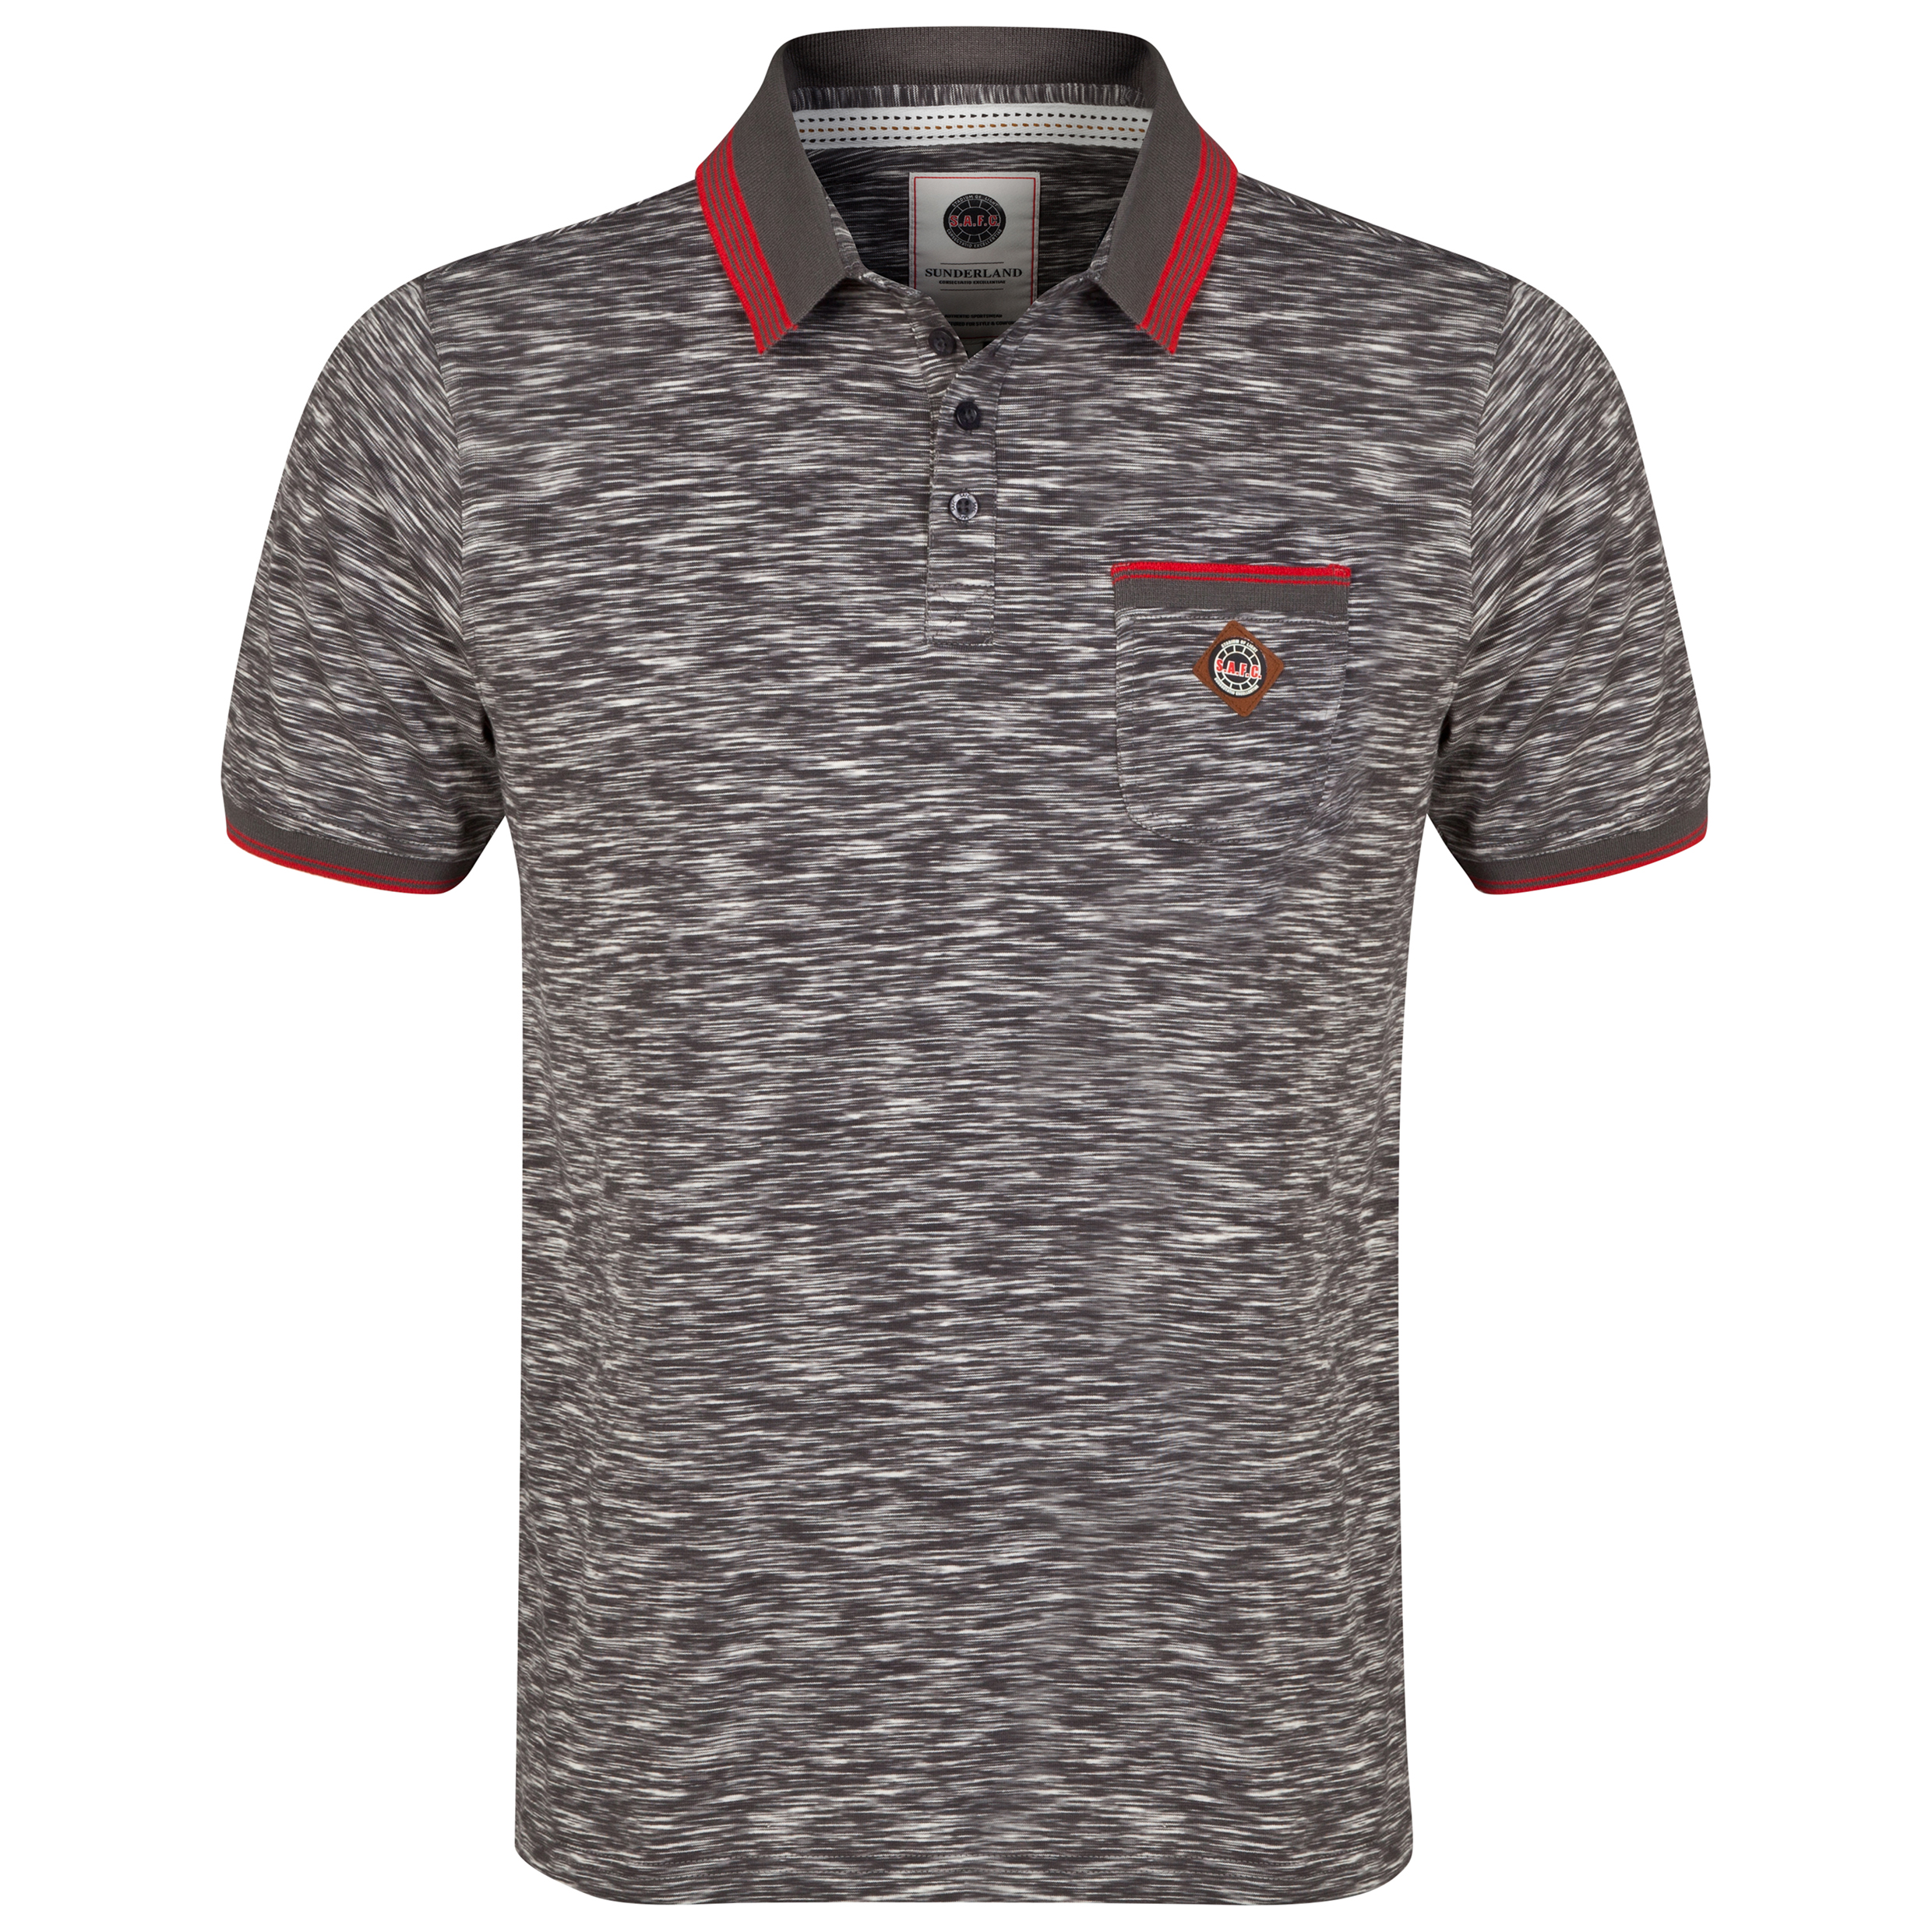 Sunderland Polo Shirt - Grey/Red - Mens